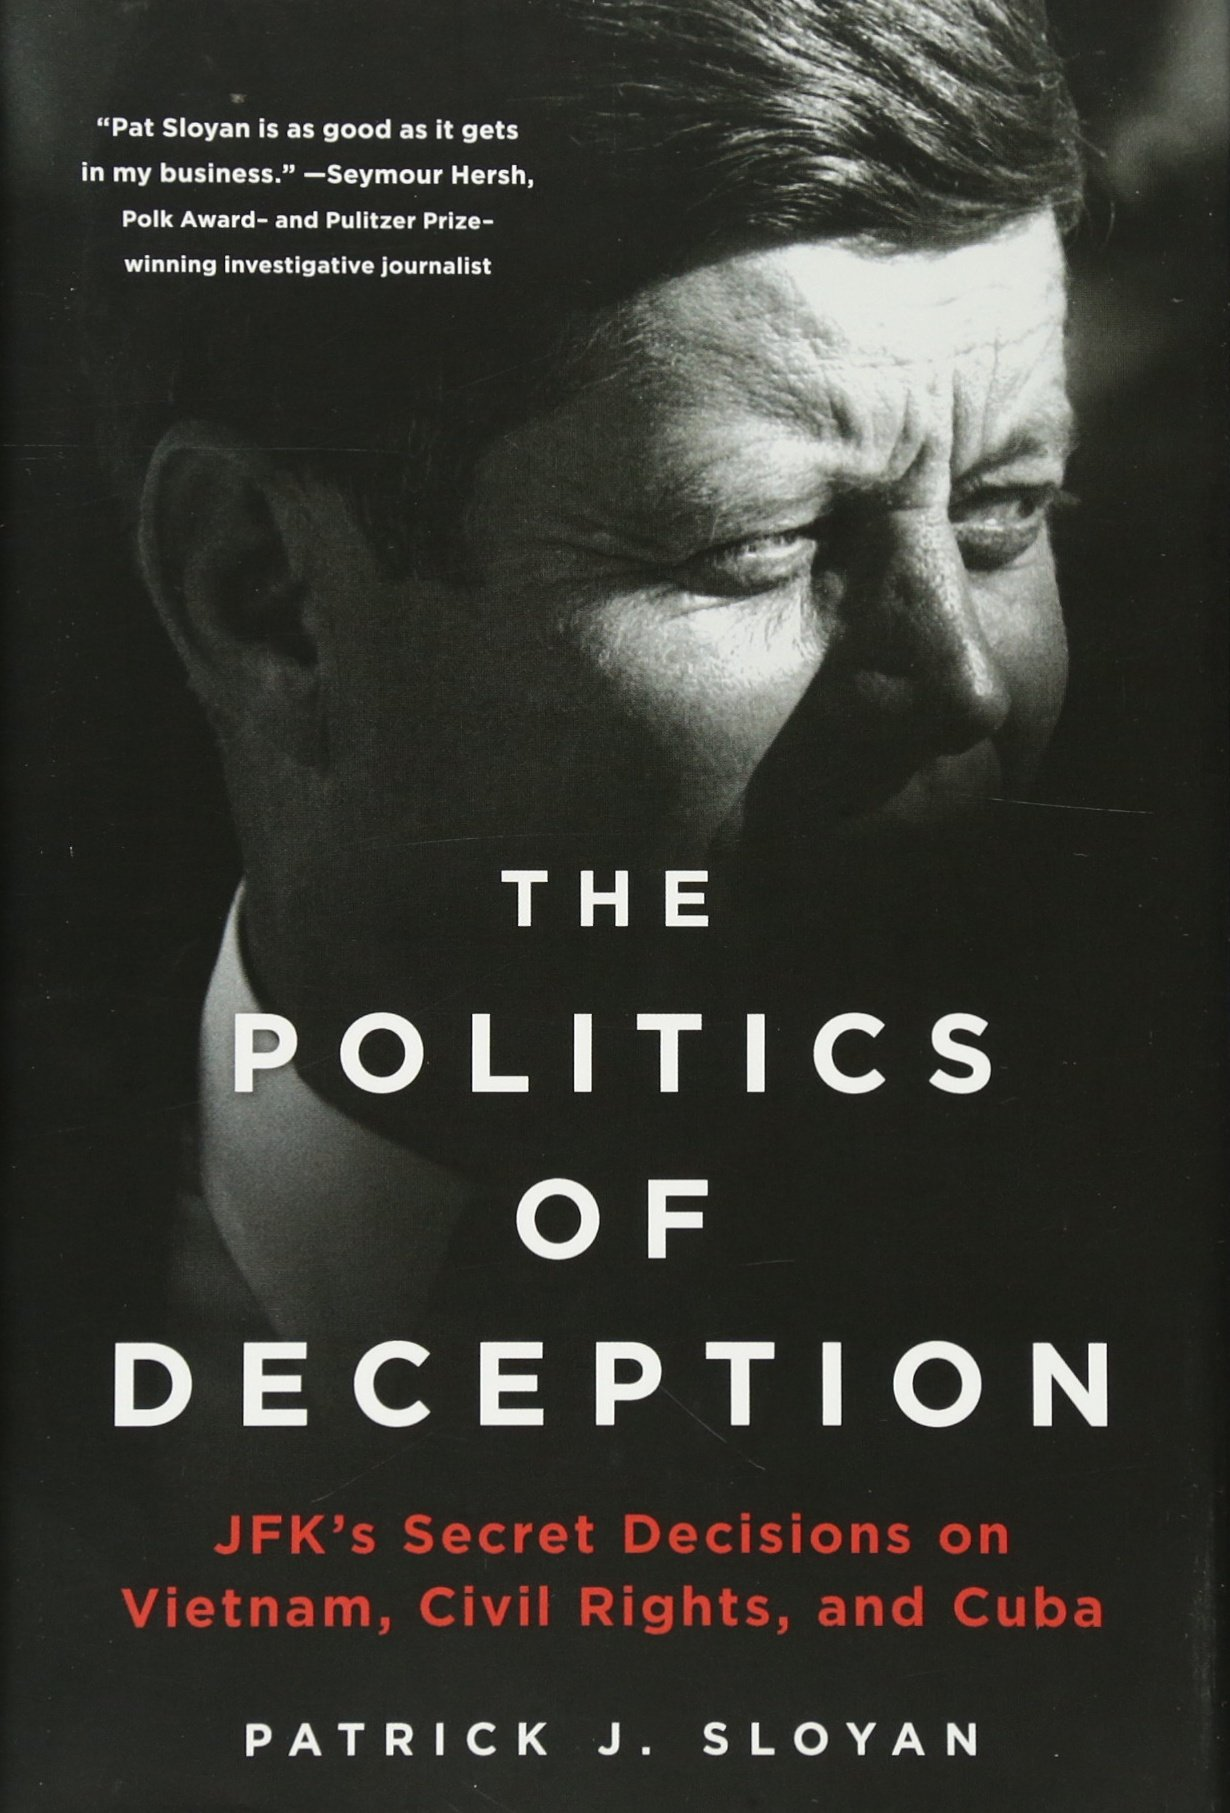 The Politics of Deception: JFK's Secret Decisions on Vietnam, Civil Rights, and Cuba